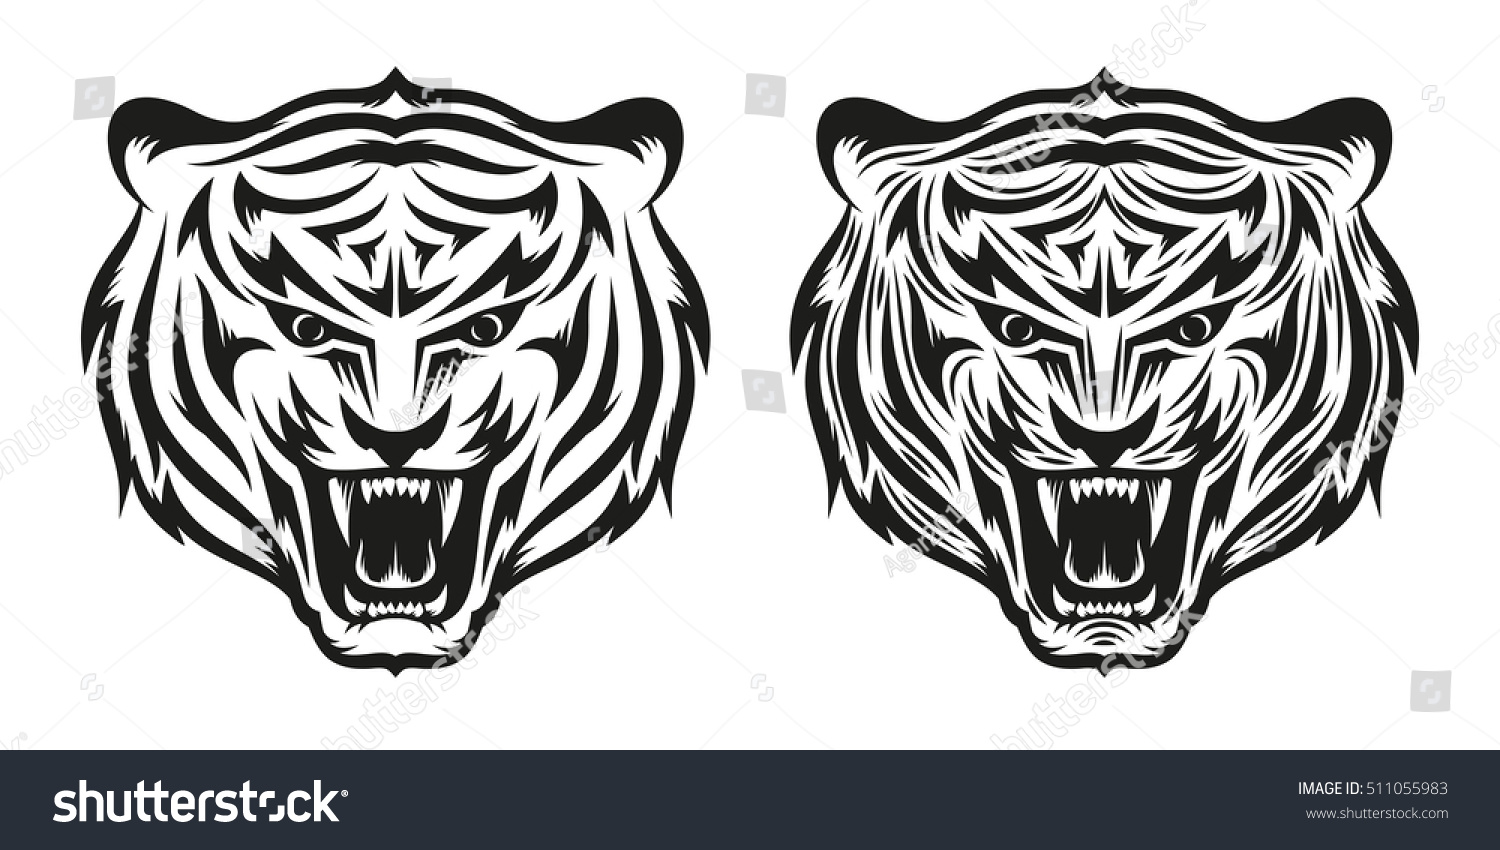 Head Of Growling Tiger Tattoo In Two Versions A Simple And Detailed Vector  Illustration How To